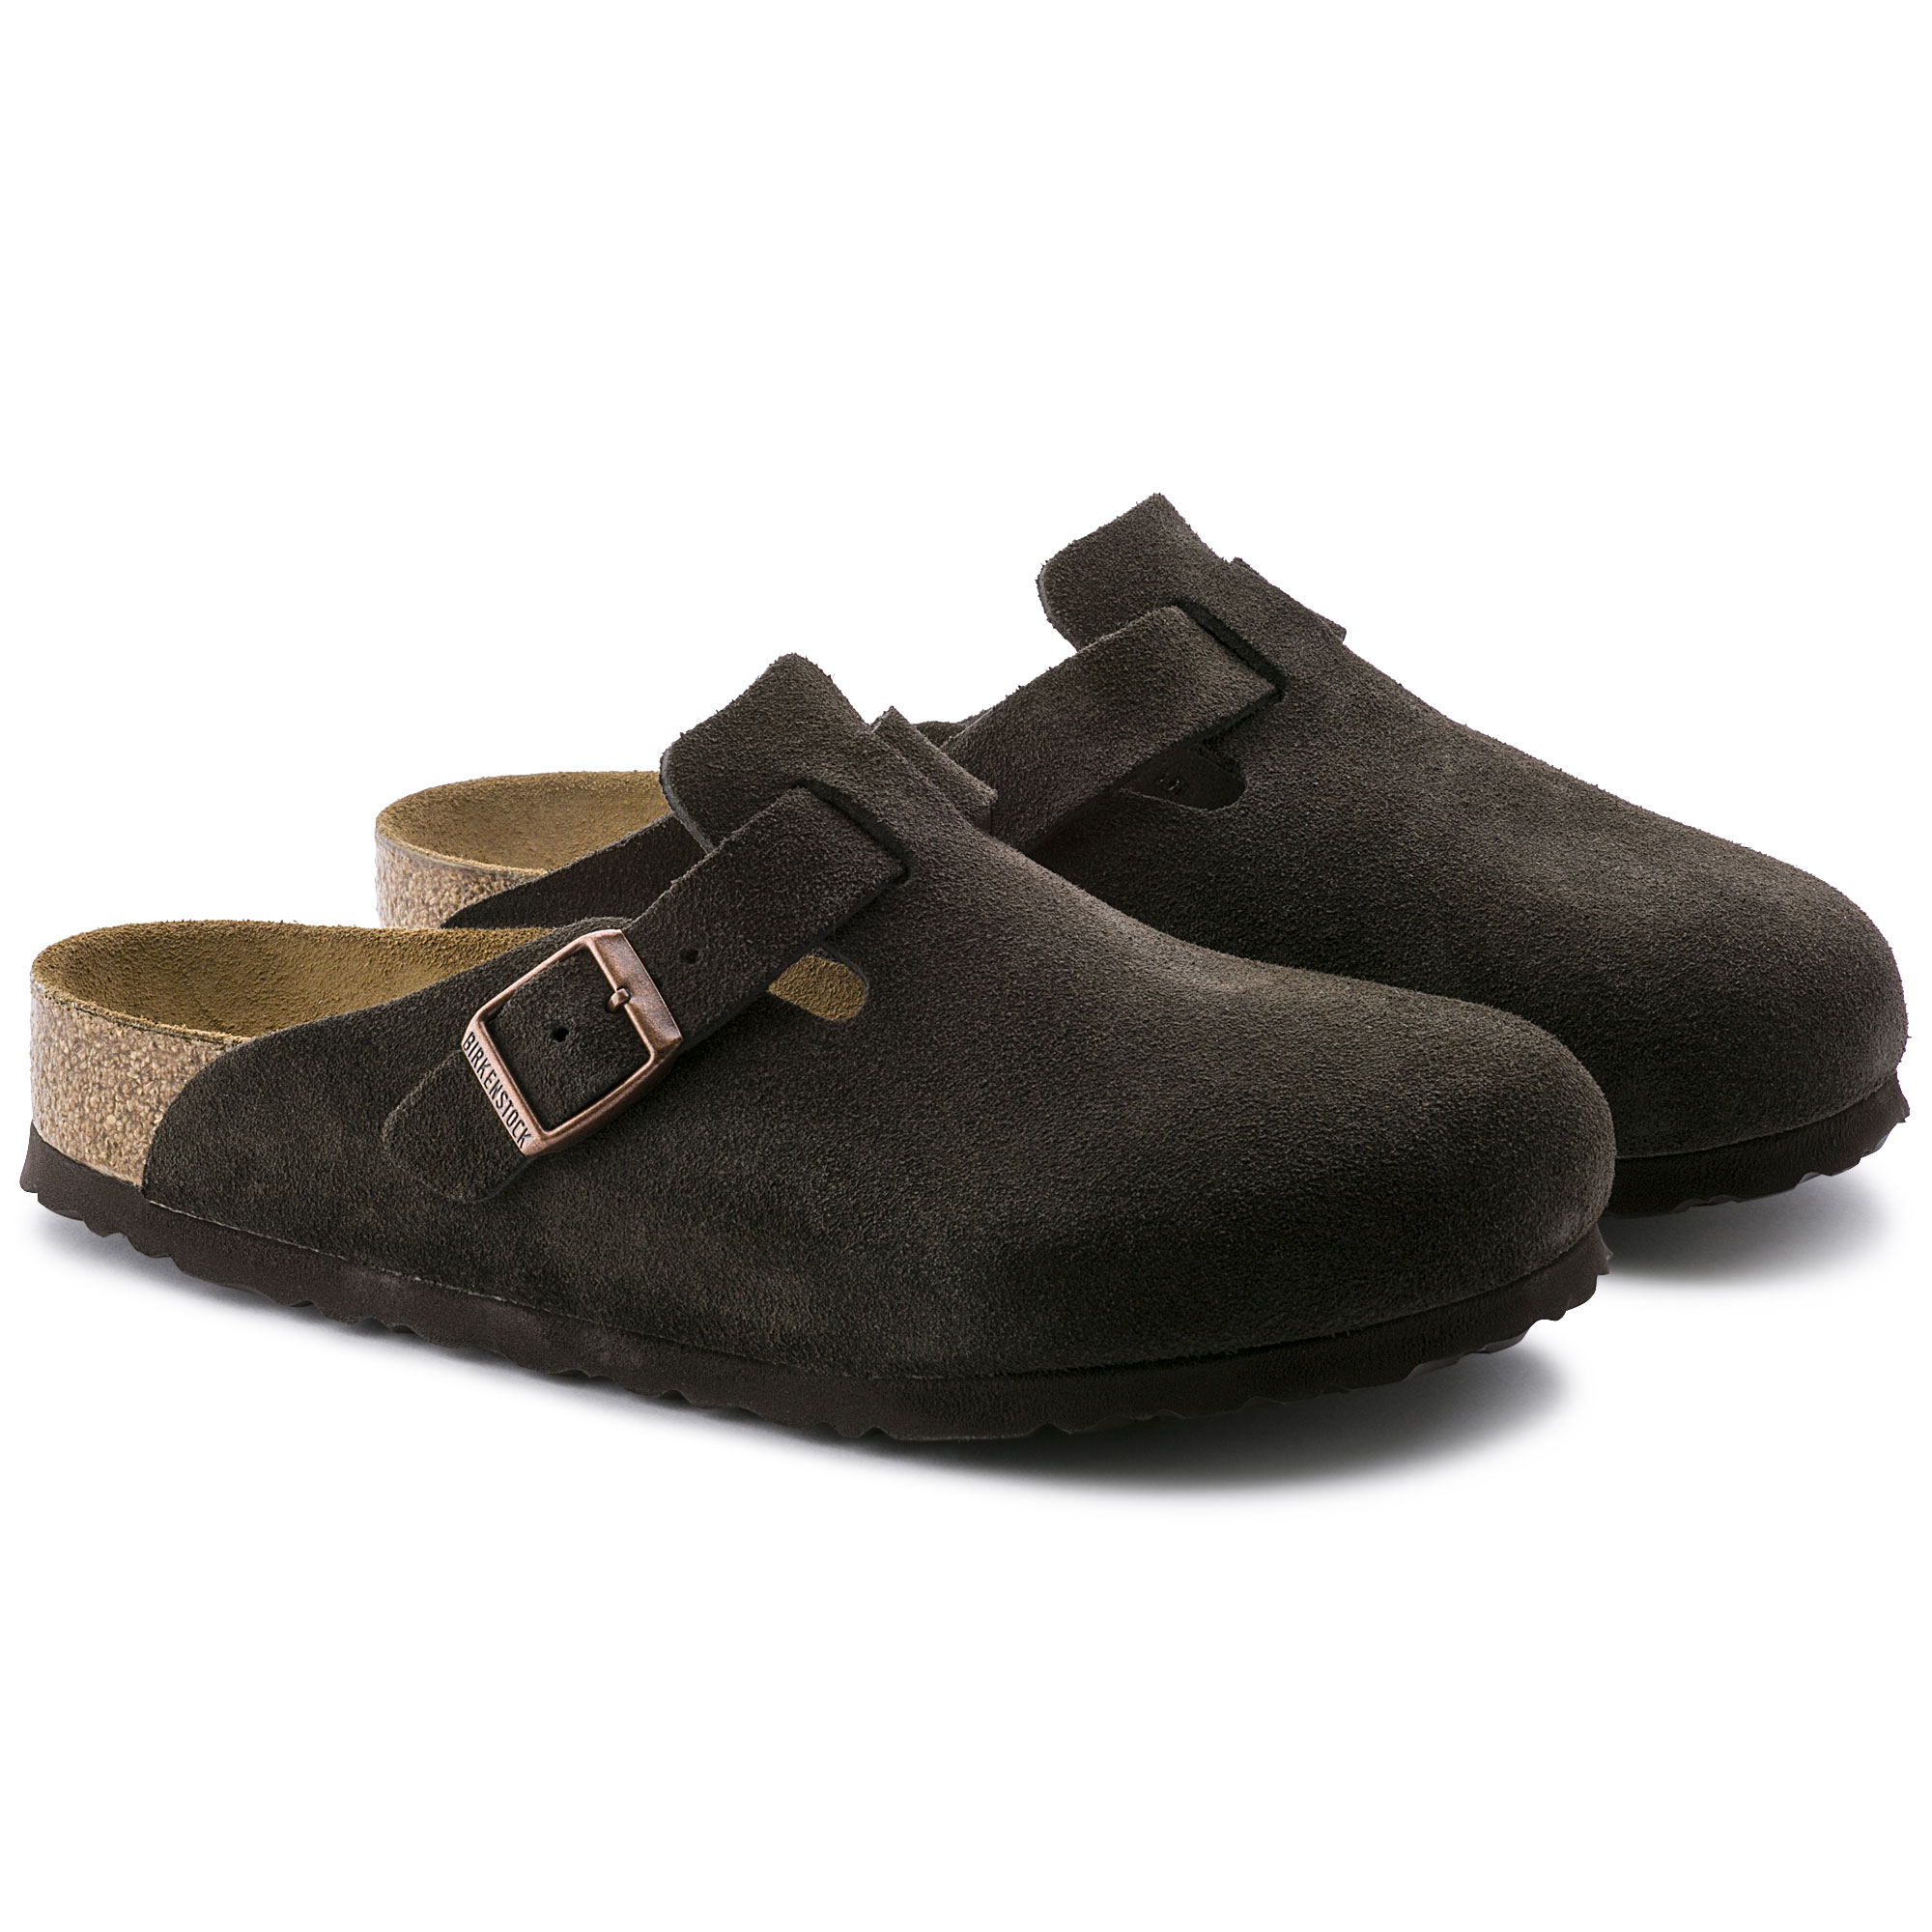 28150bee1409 ... Boston Suede Leather Mocha ...